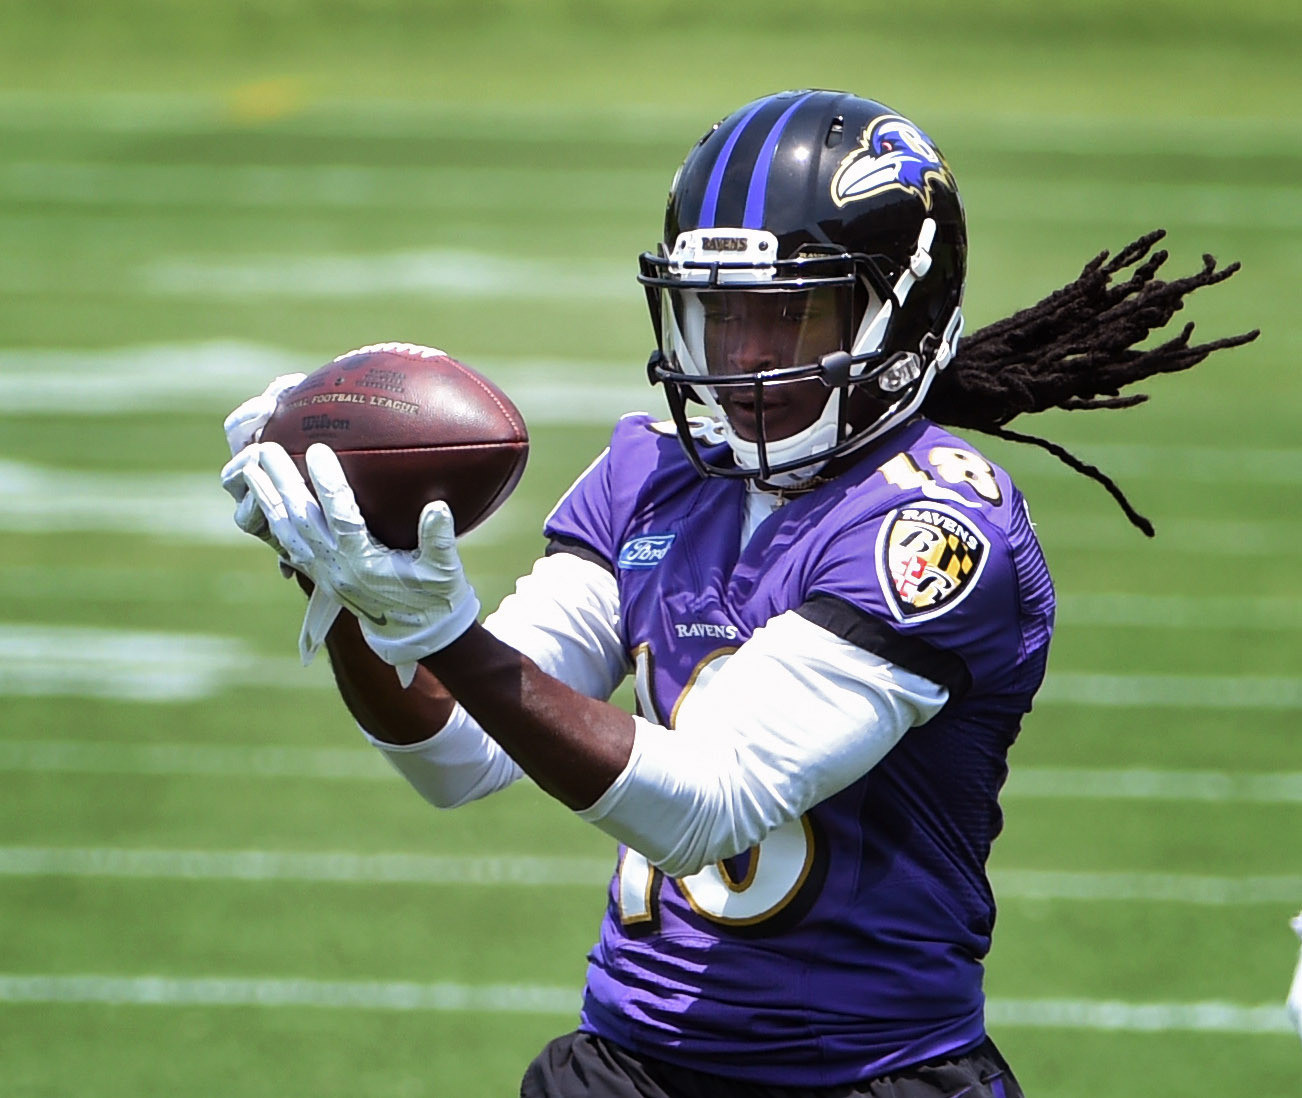 Bal-dennis-pitta-and-breshad-perriman-are-back-in-action-20160526